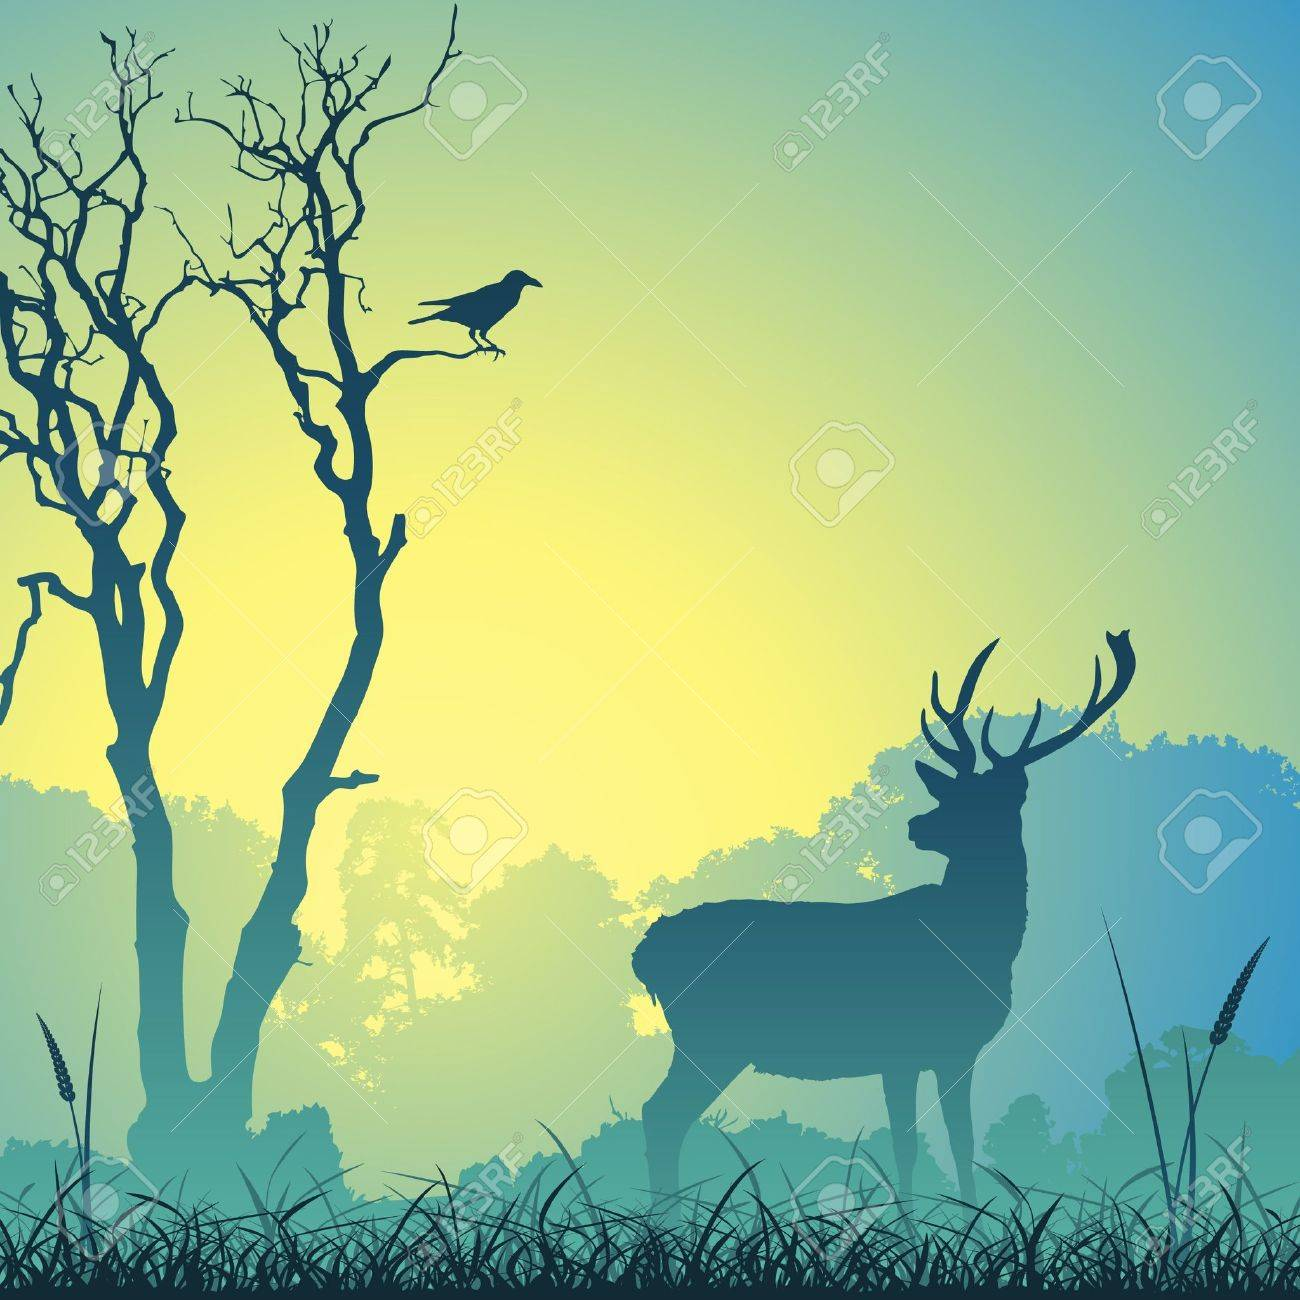 Male Stag Deer on a Meadow with Trees and Bird Stock Vector - 10291211